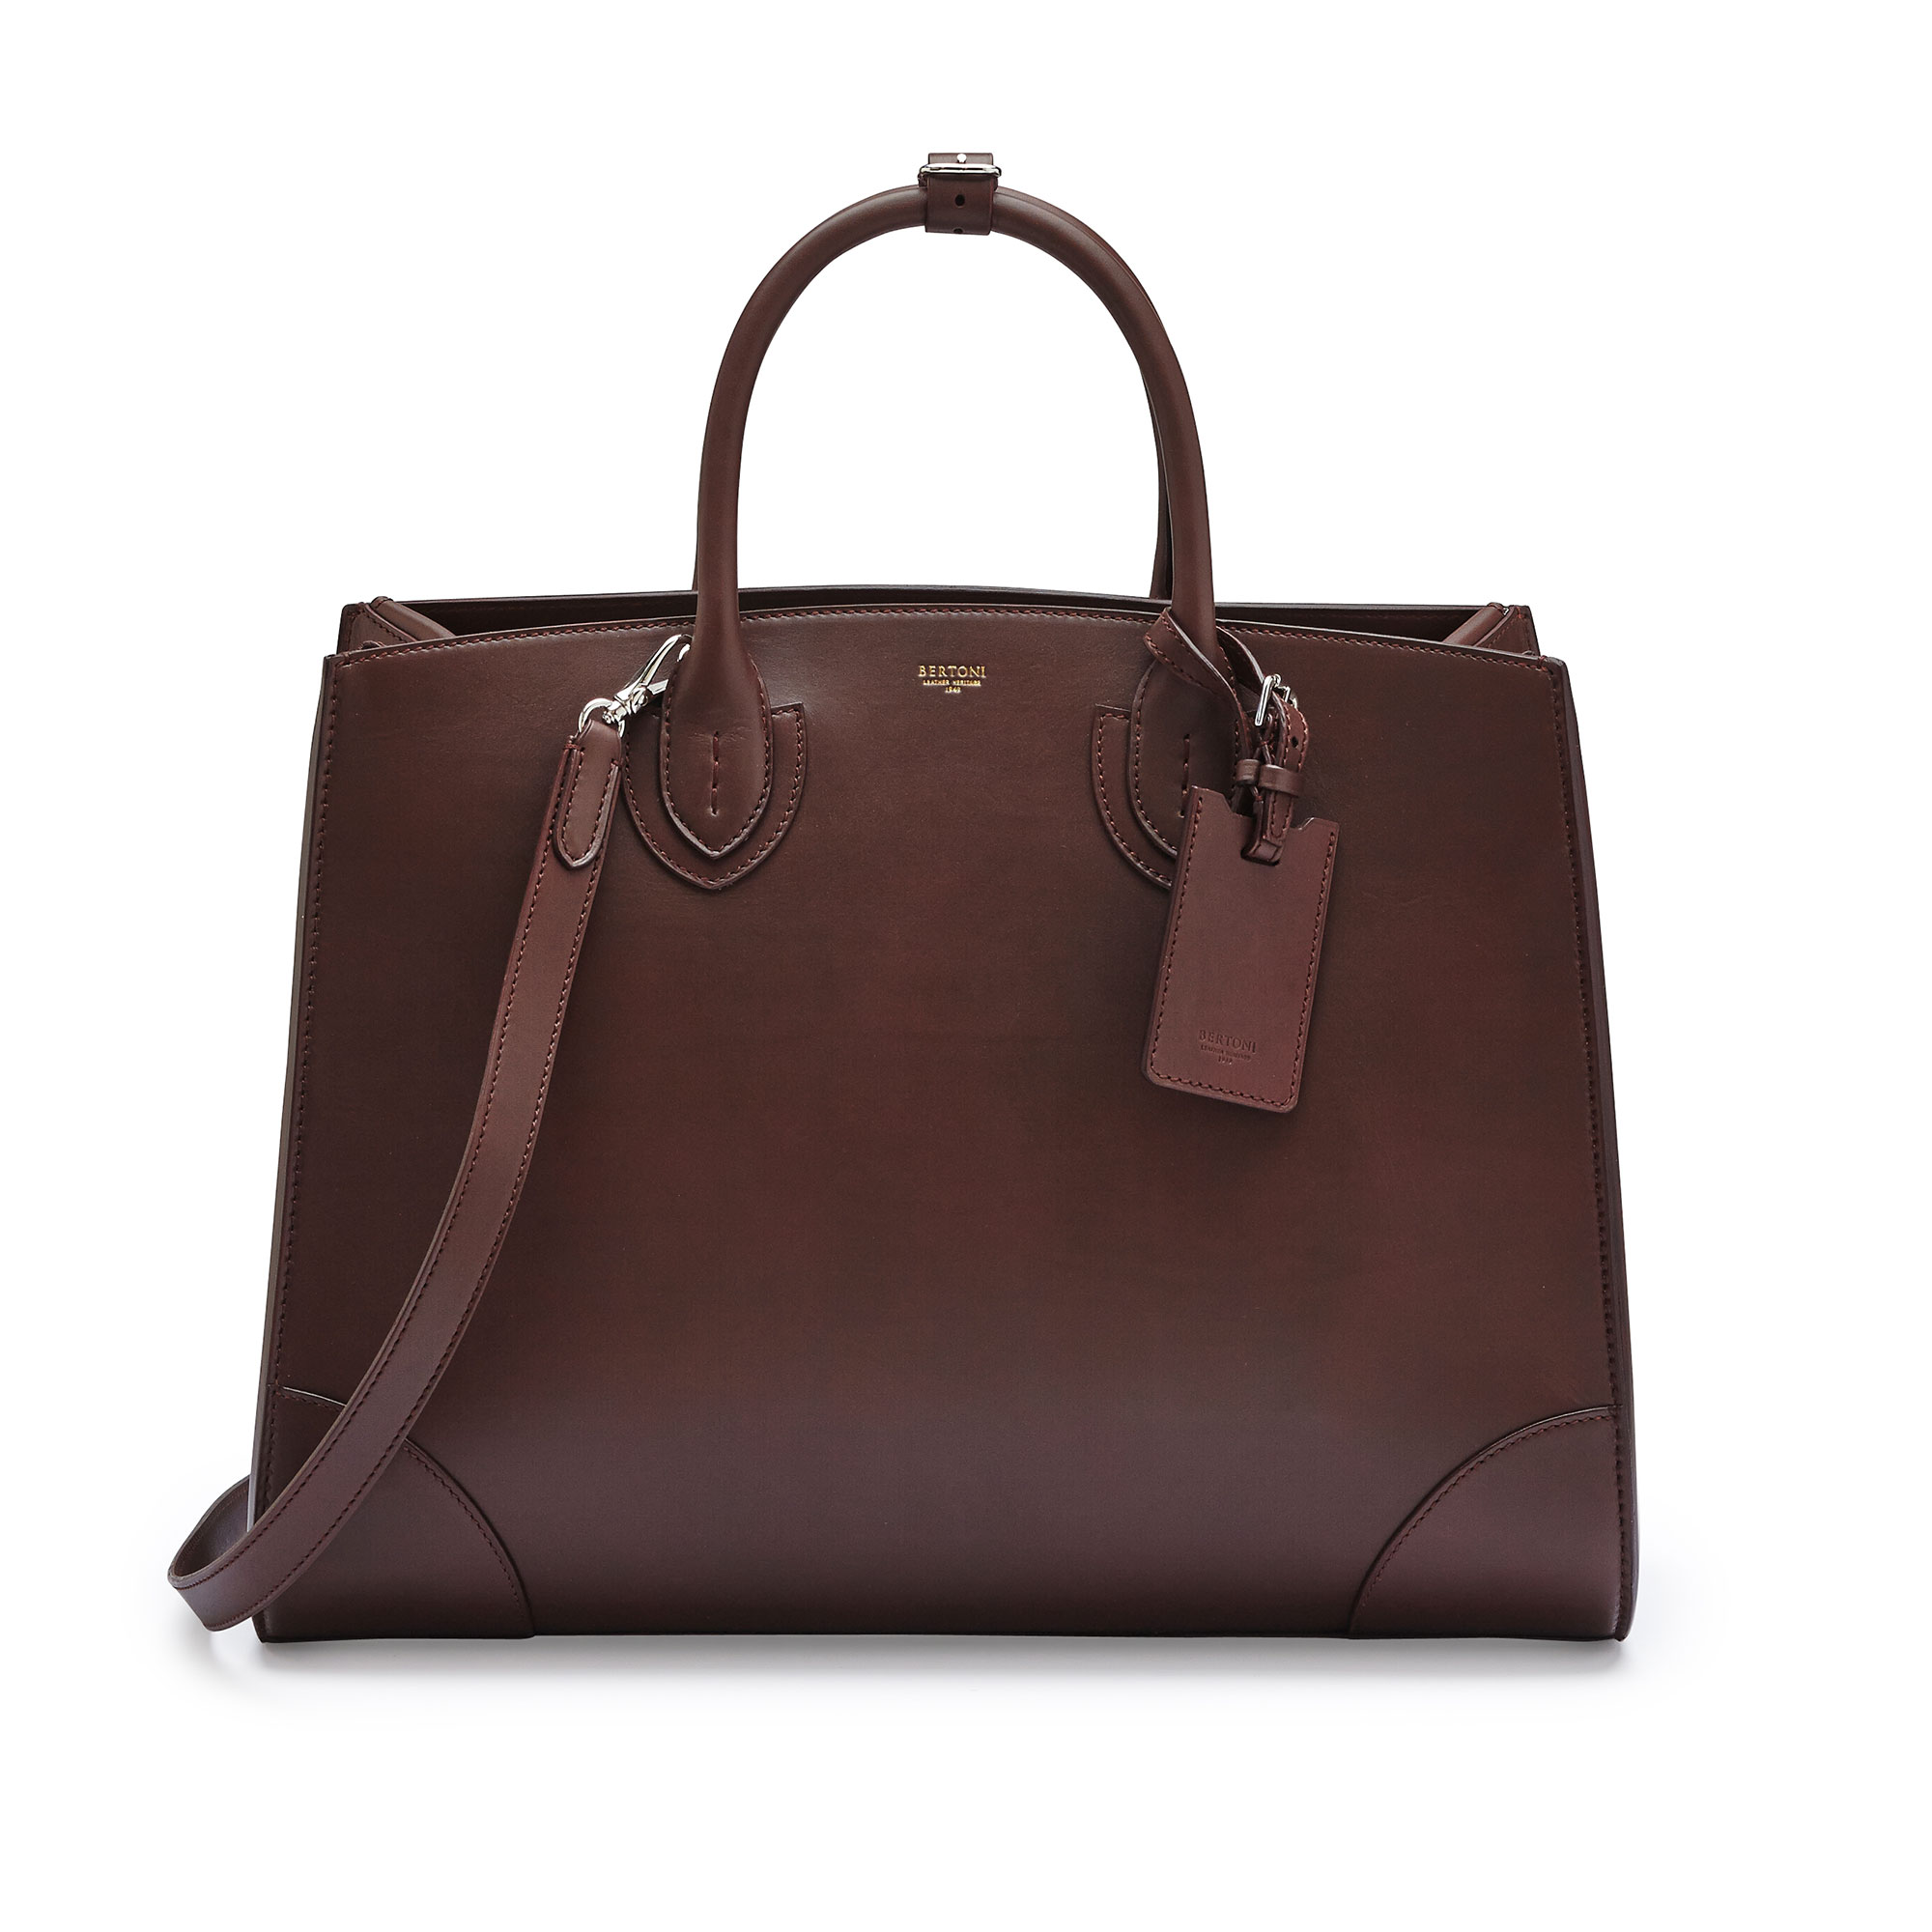 The bordeaux french calf Maxi Darcy bag by Bertoni 1949 01